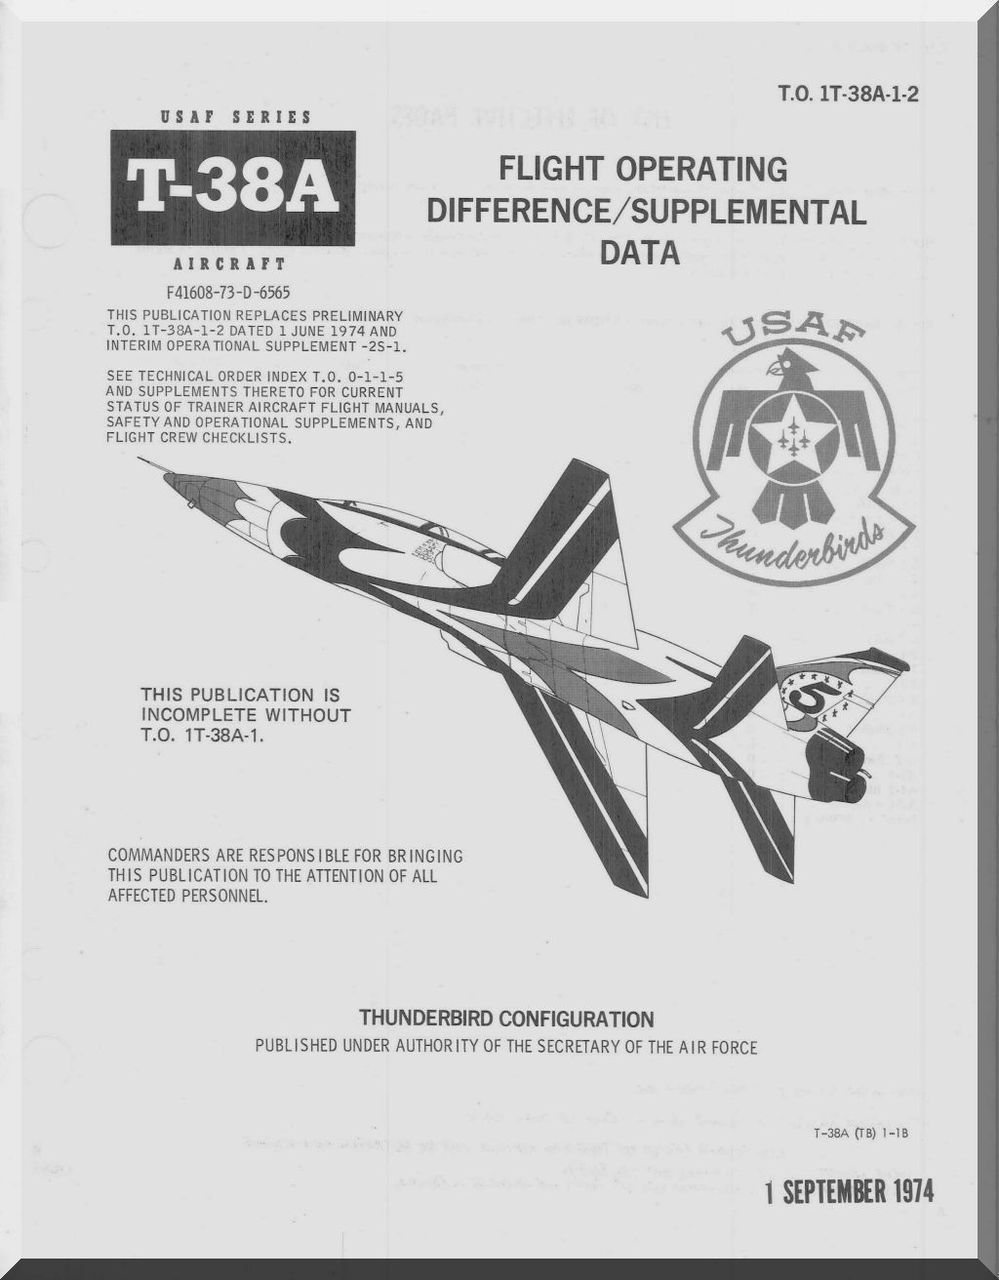 38a 1 Northrop T-38 A Aircraft Flight Operatimng Difference Suplemental ...